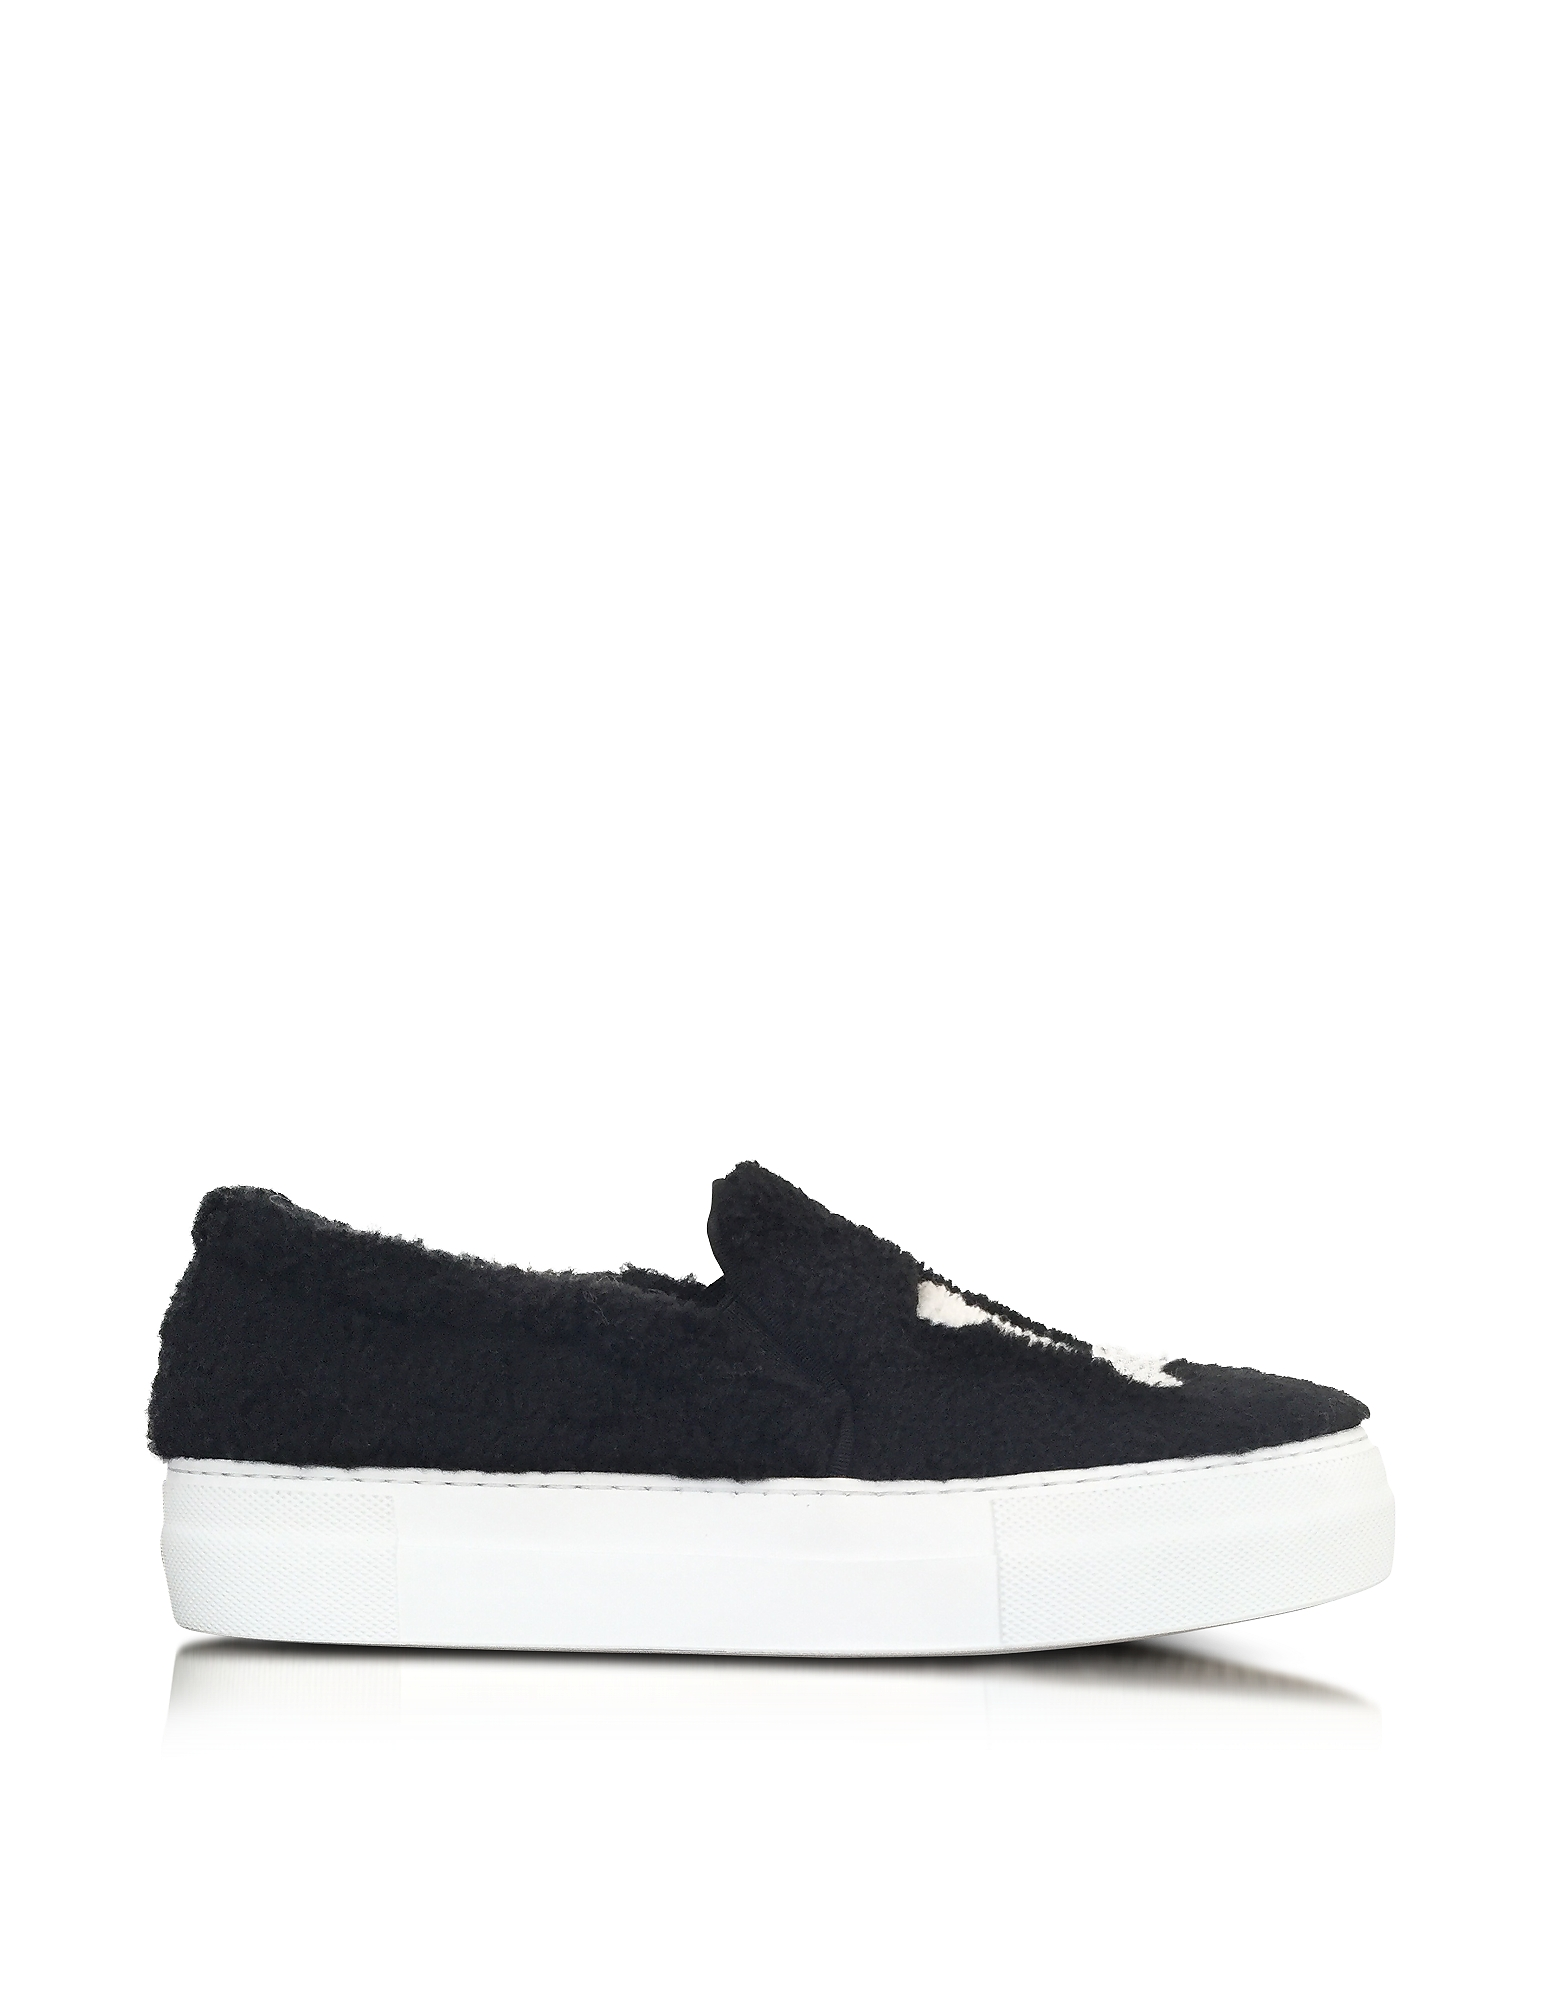 Joshua Sanders Shoes, LA Black Synthetic Fur Slip On Sneaker